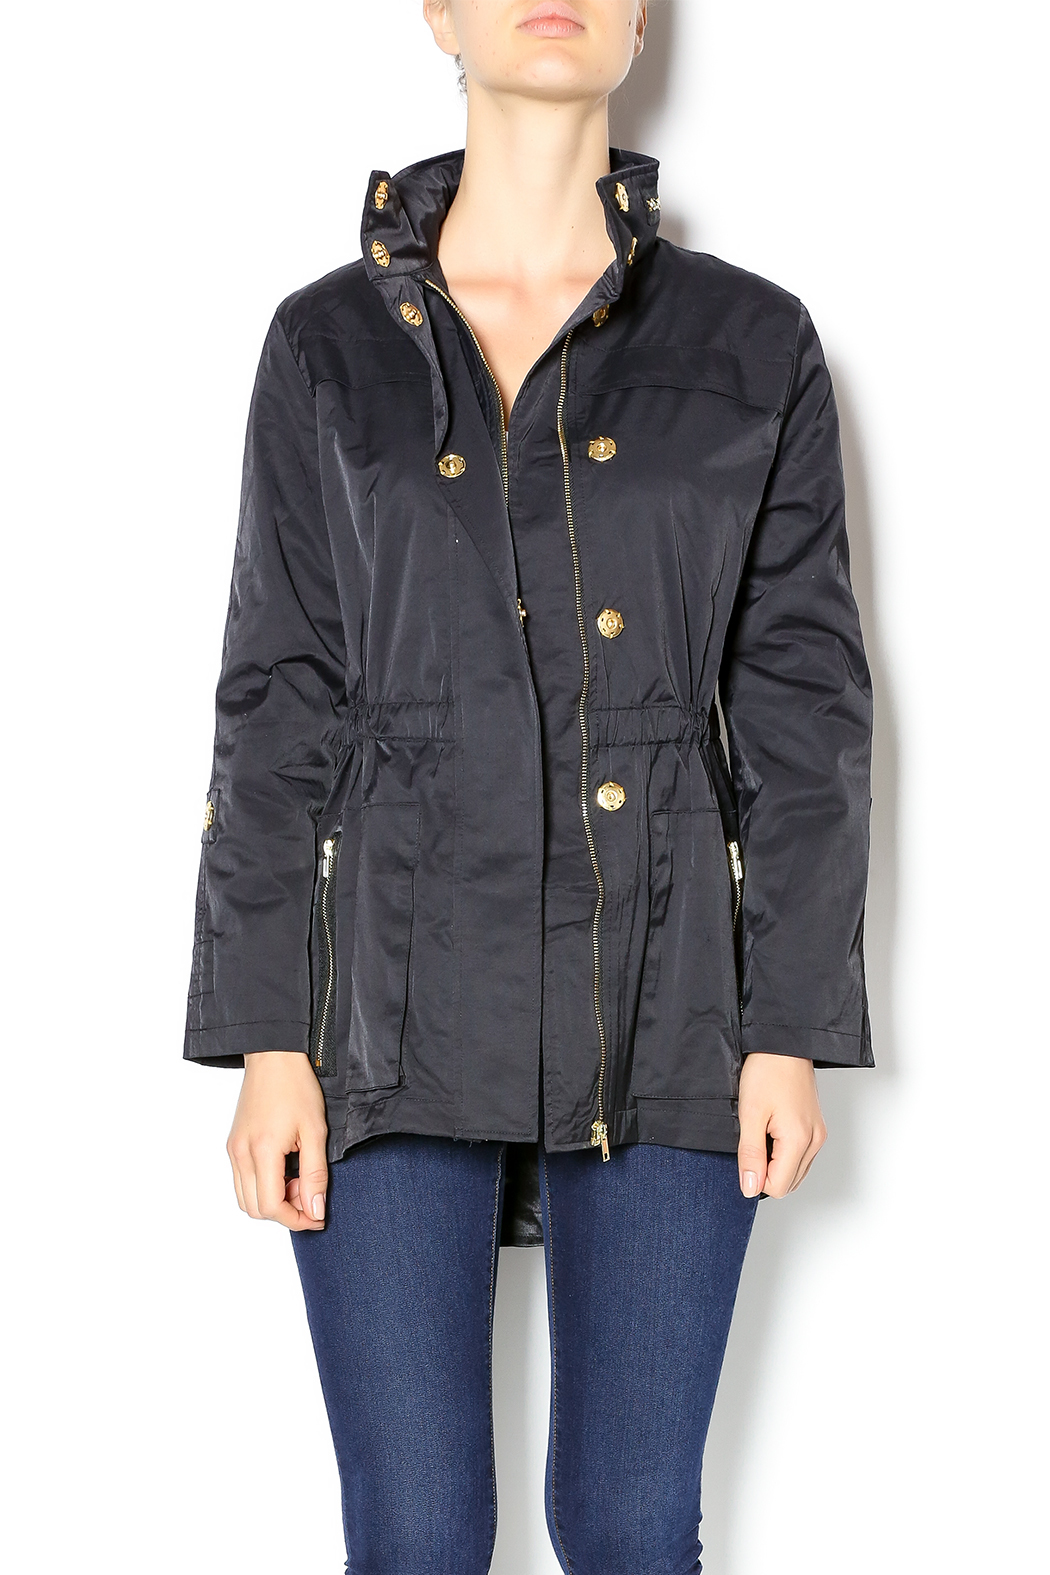 Constructed of extremely lightweight nylon that has been treated to be water resistant, this travel anorak jacket is designed to be stuffed into either of its lower pockets .